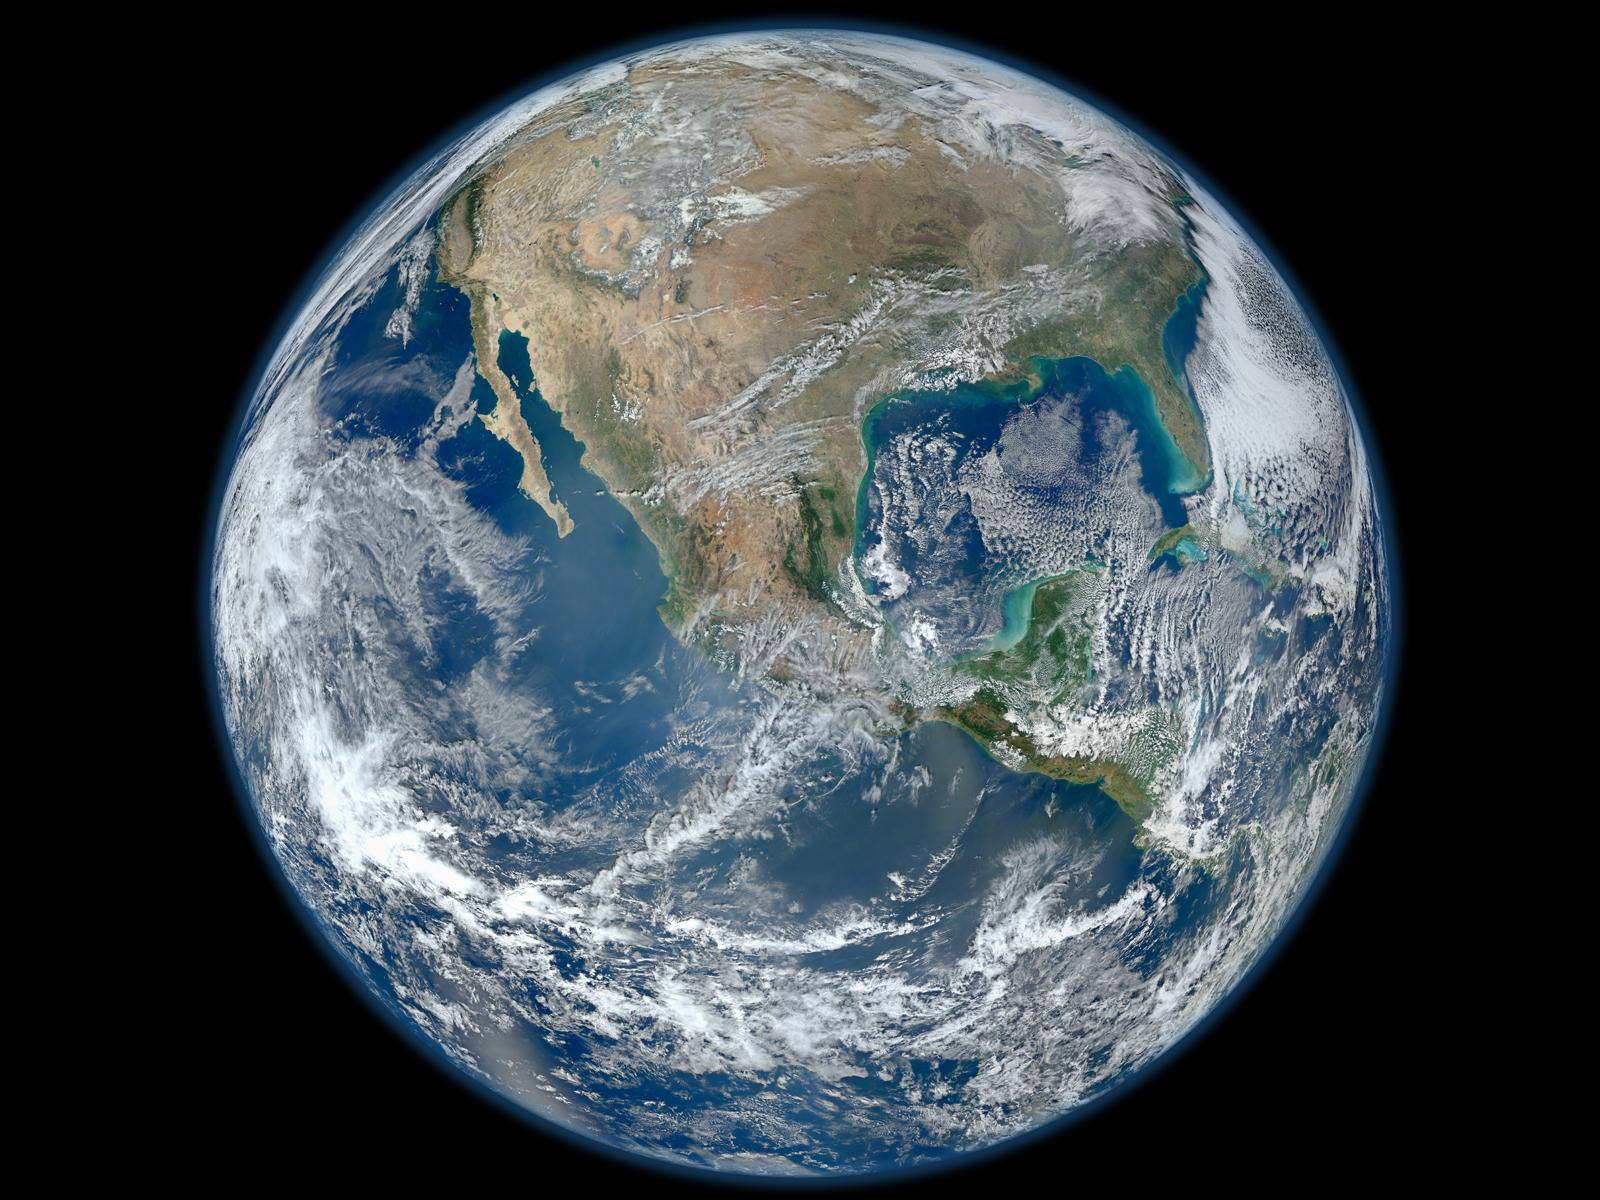 A 'Blue Marble' image of the Earth taken from the VIIRS instrument aboard NASA's most recently launched Earth-observing satellite - Suomi NPP. This composite image uses a number of swaths of the Earth's surface taken on January 4, 2012. The NPP satellite was renamed 'Suomi NPP' on January 24, 2012 to honor the late Verner E. Suomi of the University of Wisconsin.  Suomi NPP is NASA's next Earth-observing research satellite. It is the first of a new generation of satellites that will observe many facets of our changing Earth.  Suomi NPP is carrying five instruments on board. The biggest and most important instrument is The Visible/Infrared Imager Radiometer Suite or VIIRS.  Image Credit: NASA/NOAA/GSFC/Suomi NPP/VIIRS/Norman Kuring